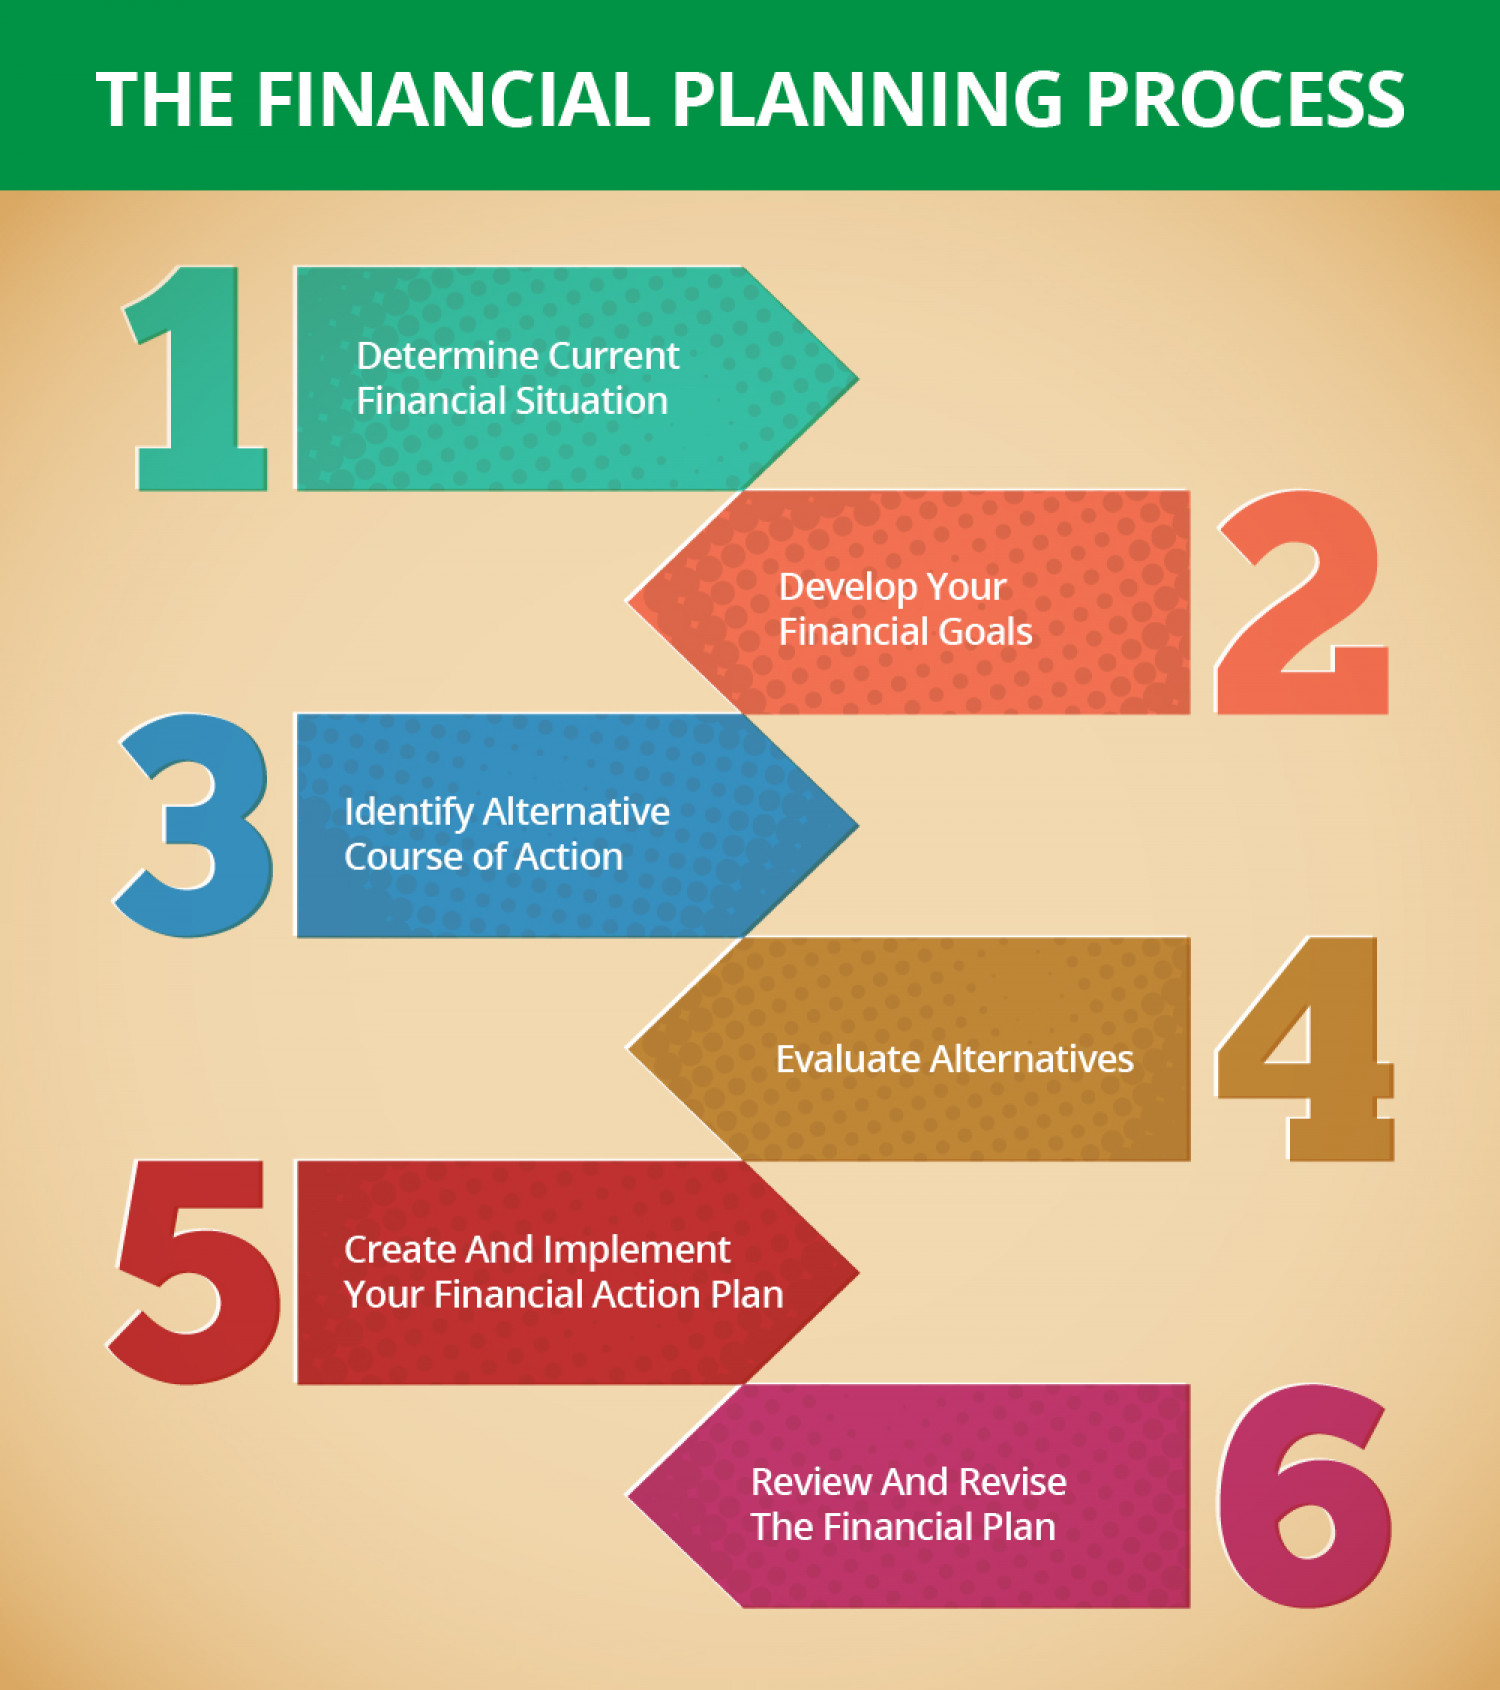 steps in the financial planning process | visual.ly